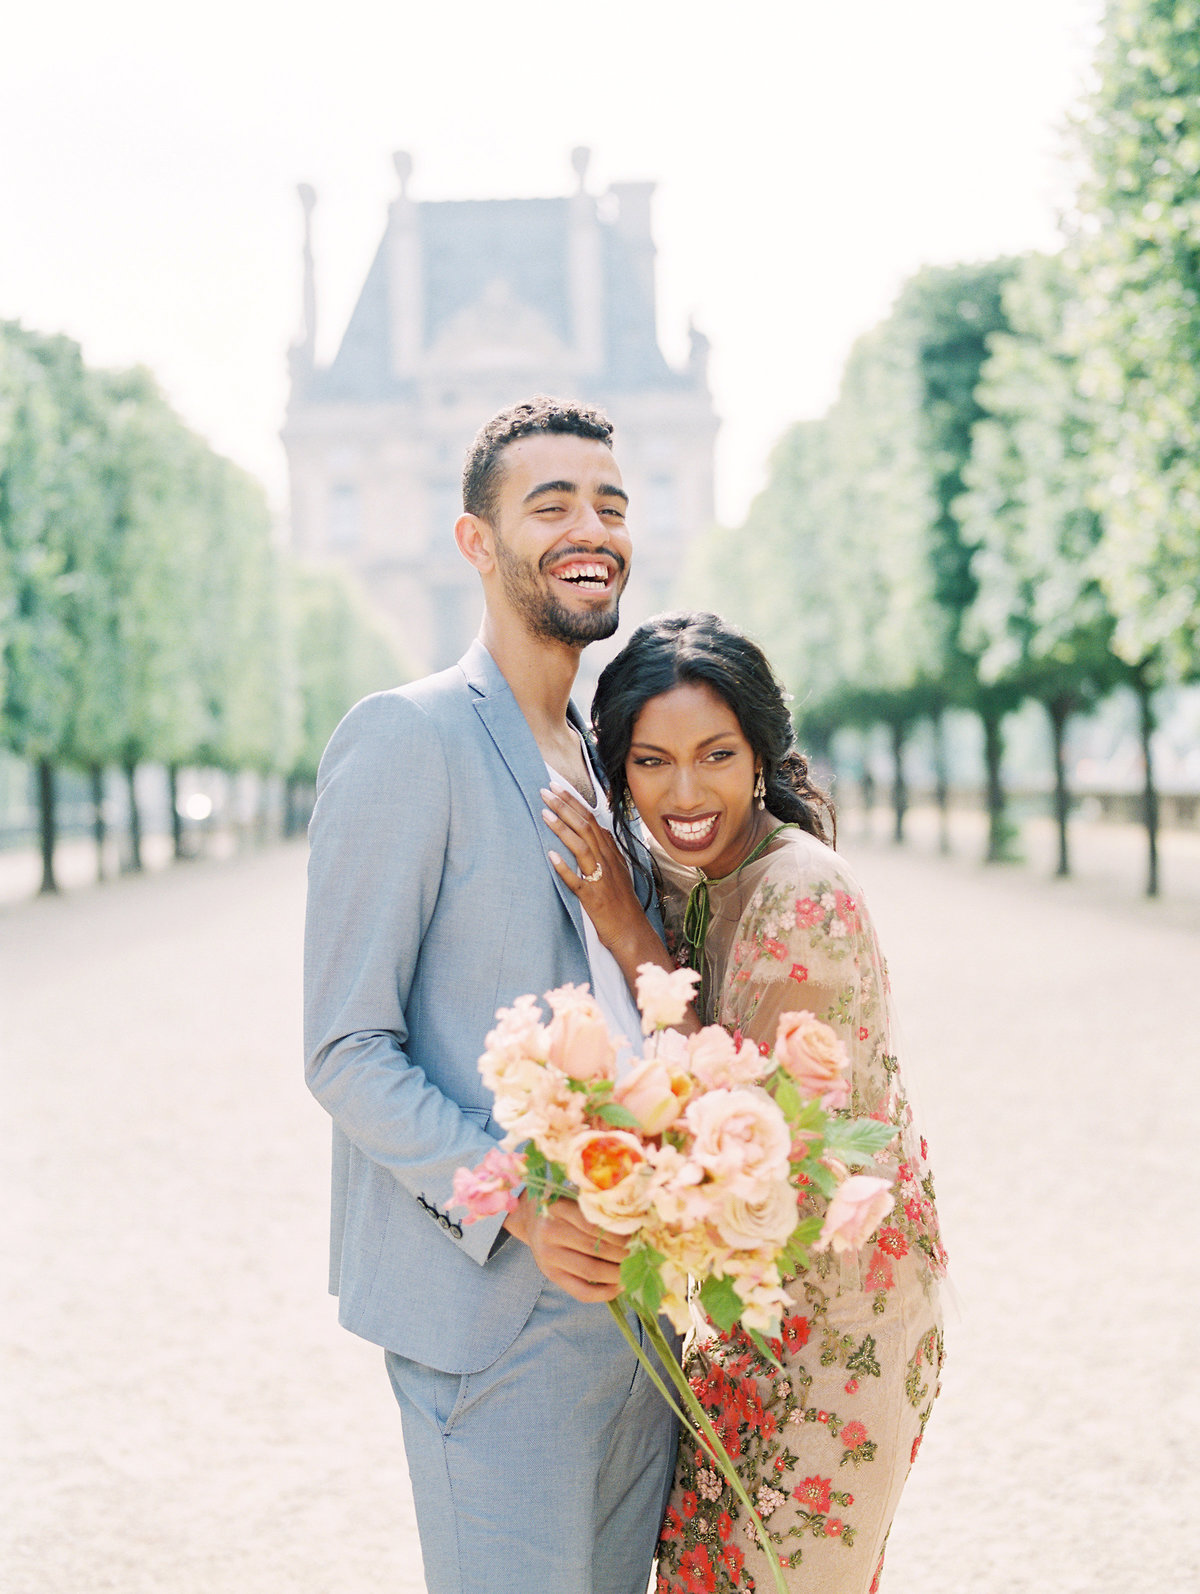 Marchesa Gown-Engagement in Paris, France at the Tuileries